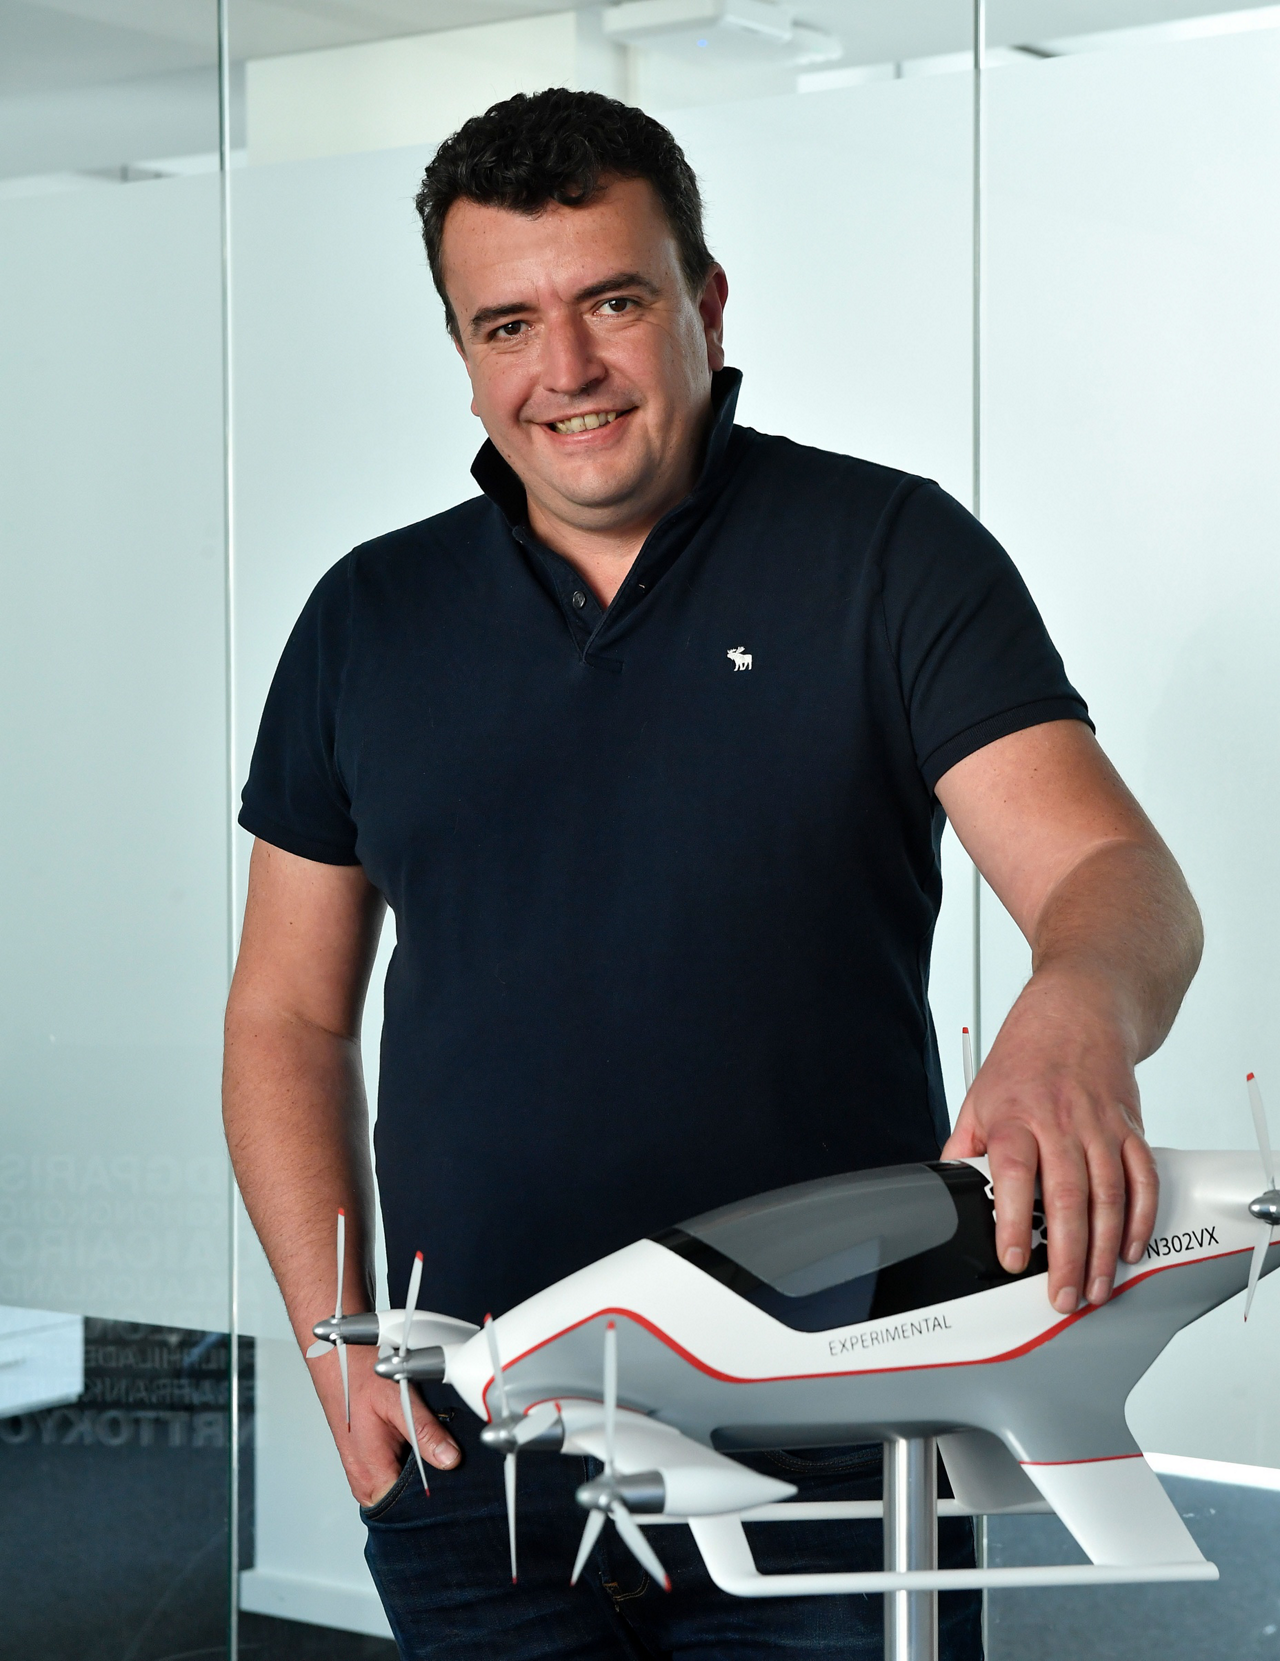 Romain Legast is the Head of Procurement at Airbus Urban Air Mobility